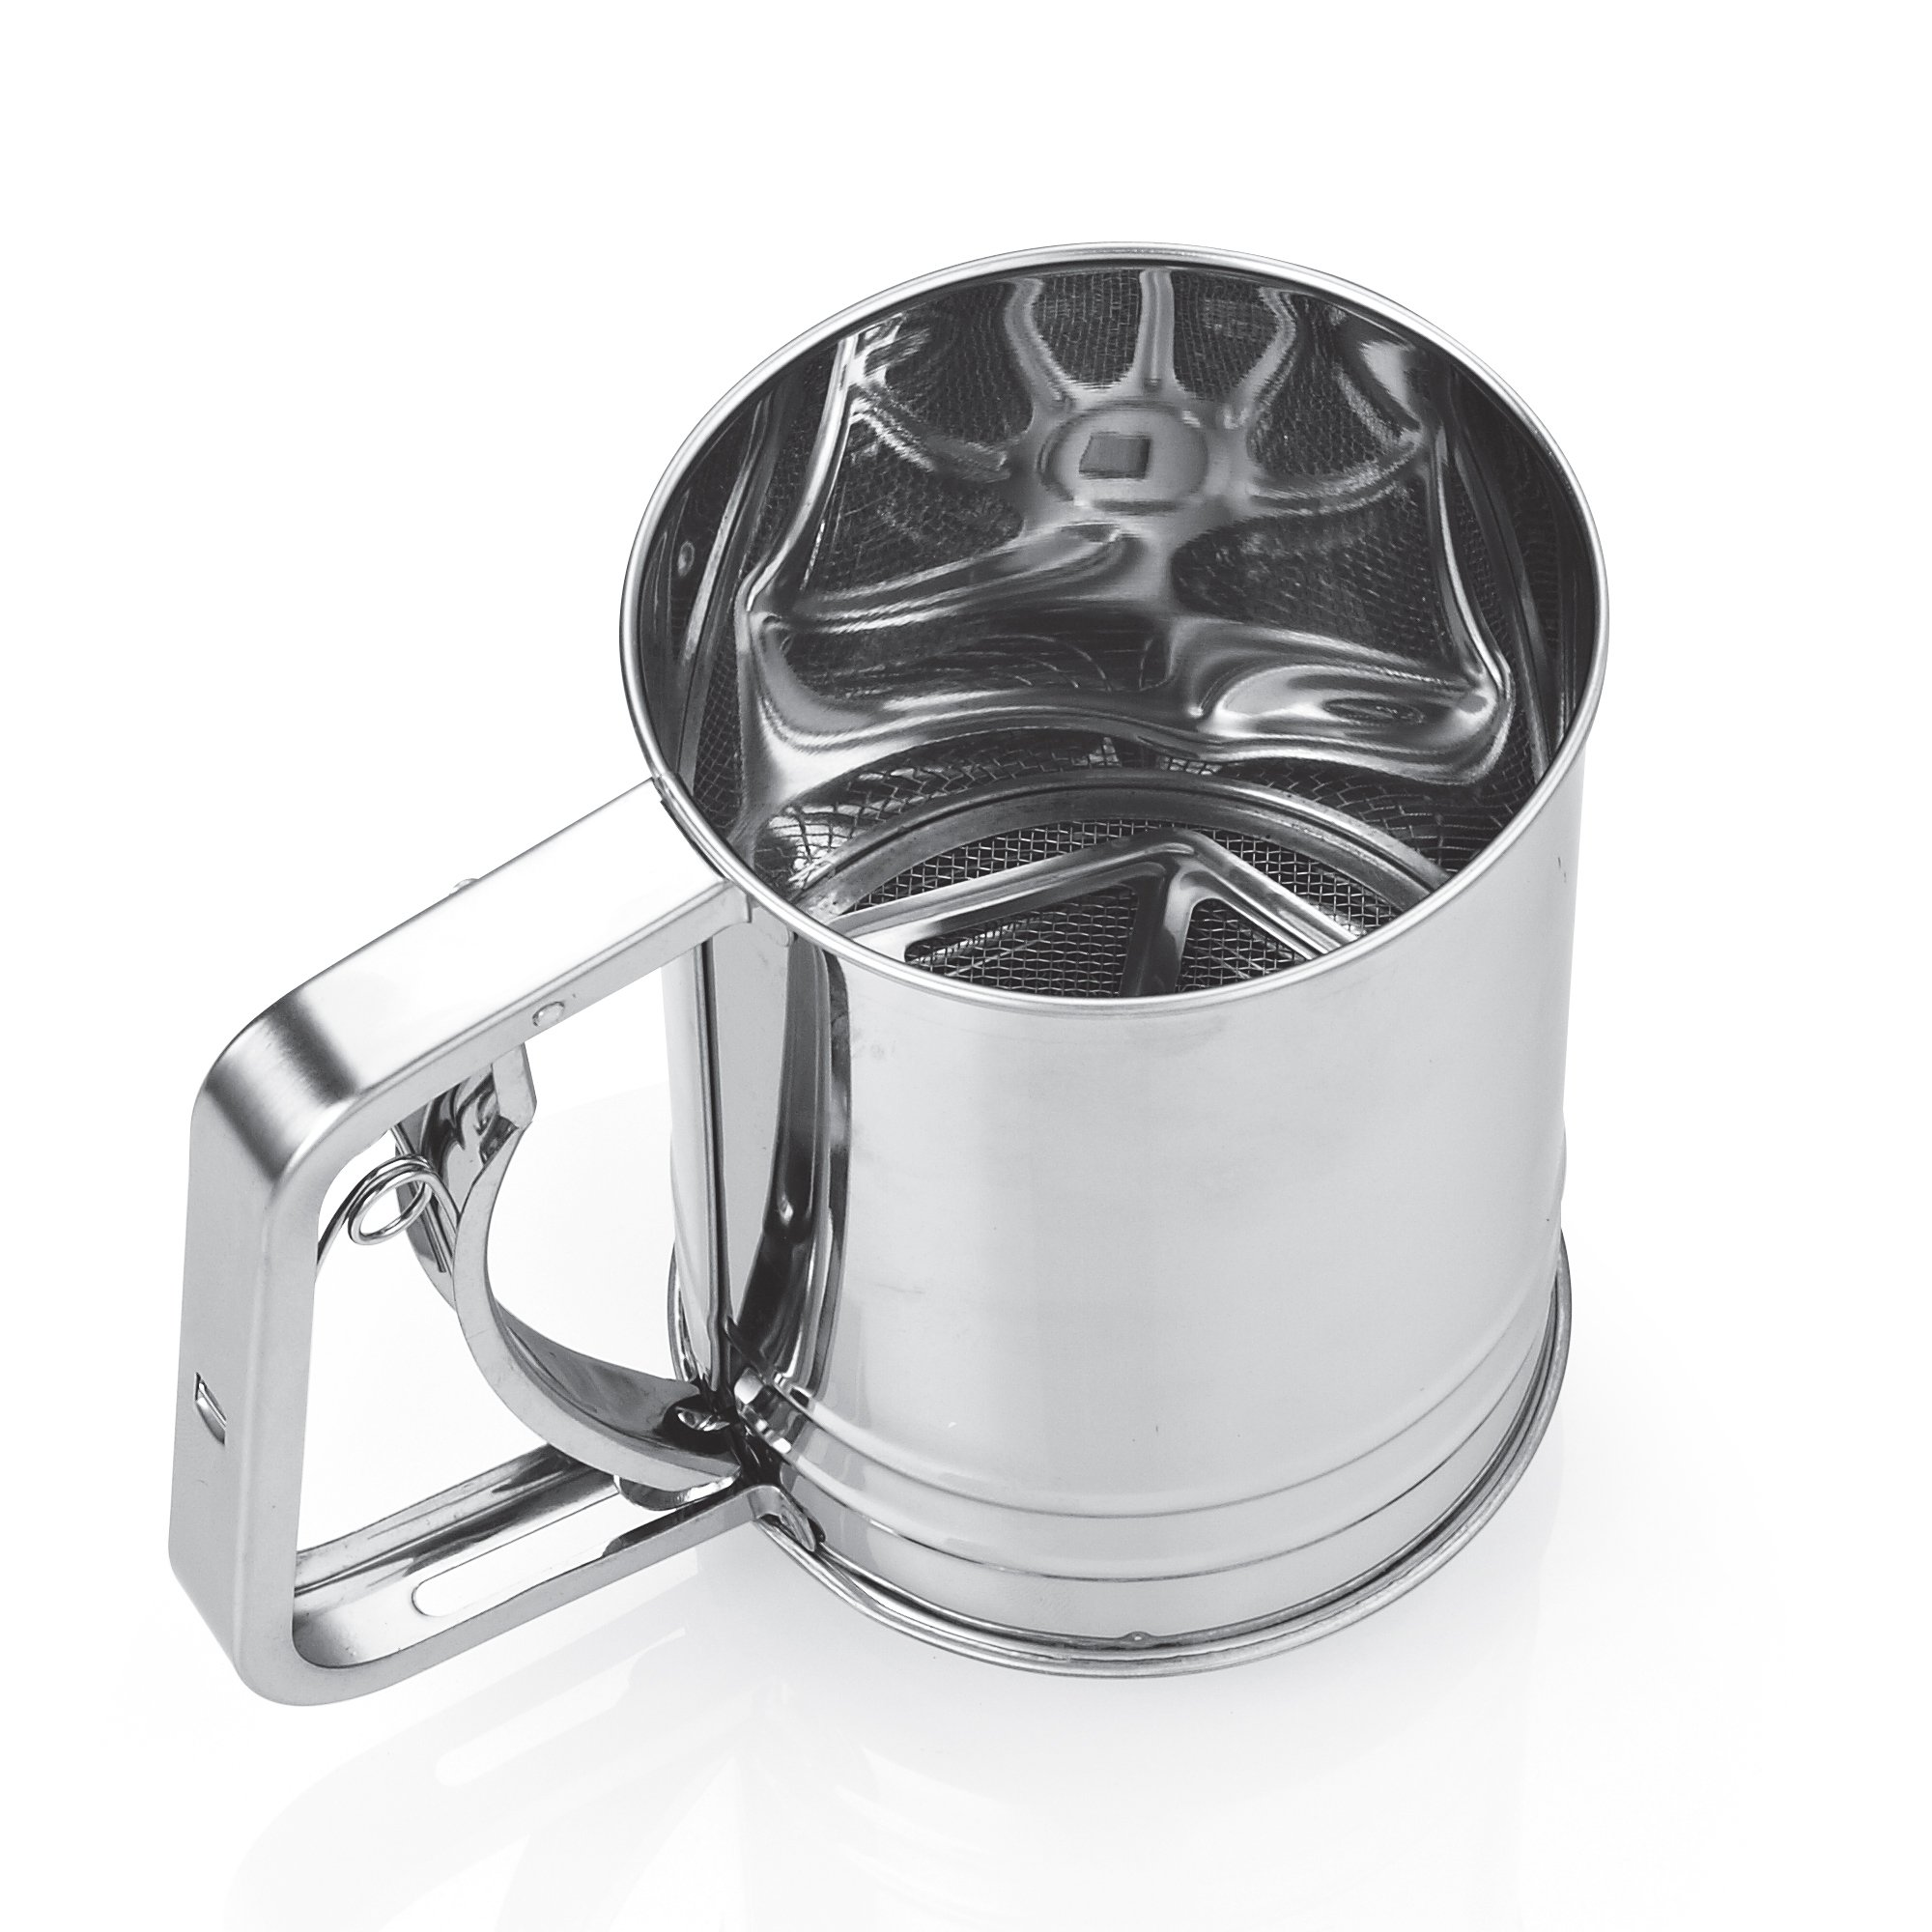 Cook N Home 3-Cup Stainless Steel Flour Sifter, Squeeze Handle